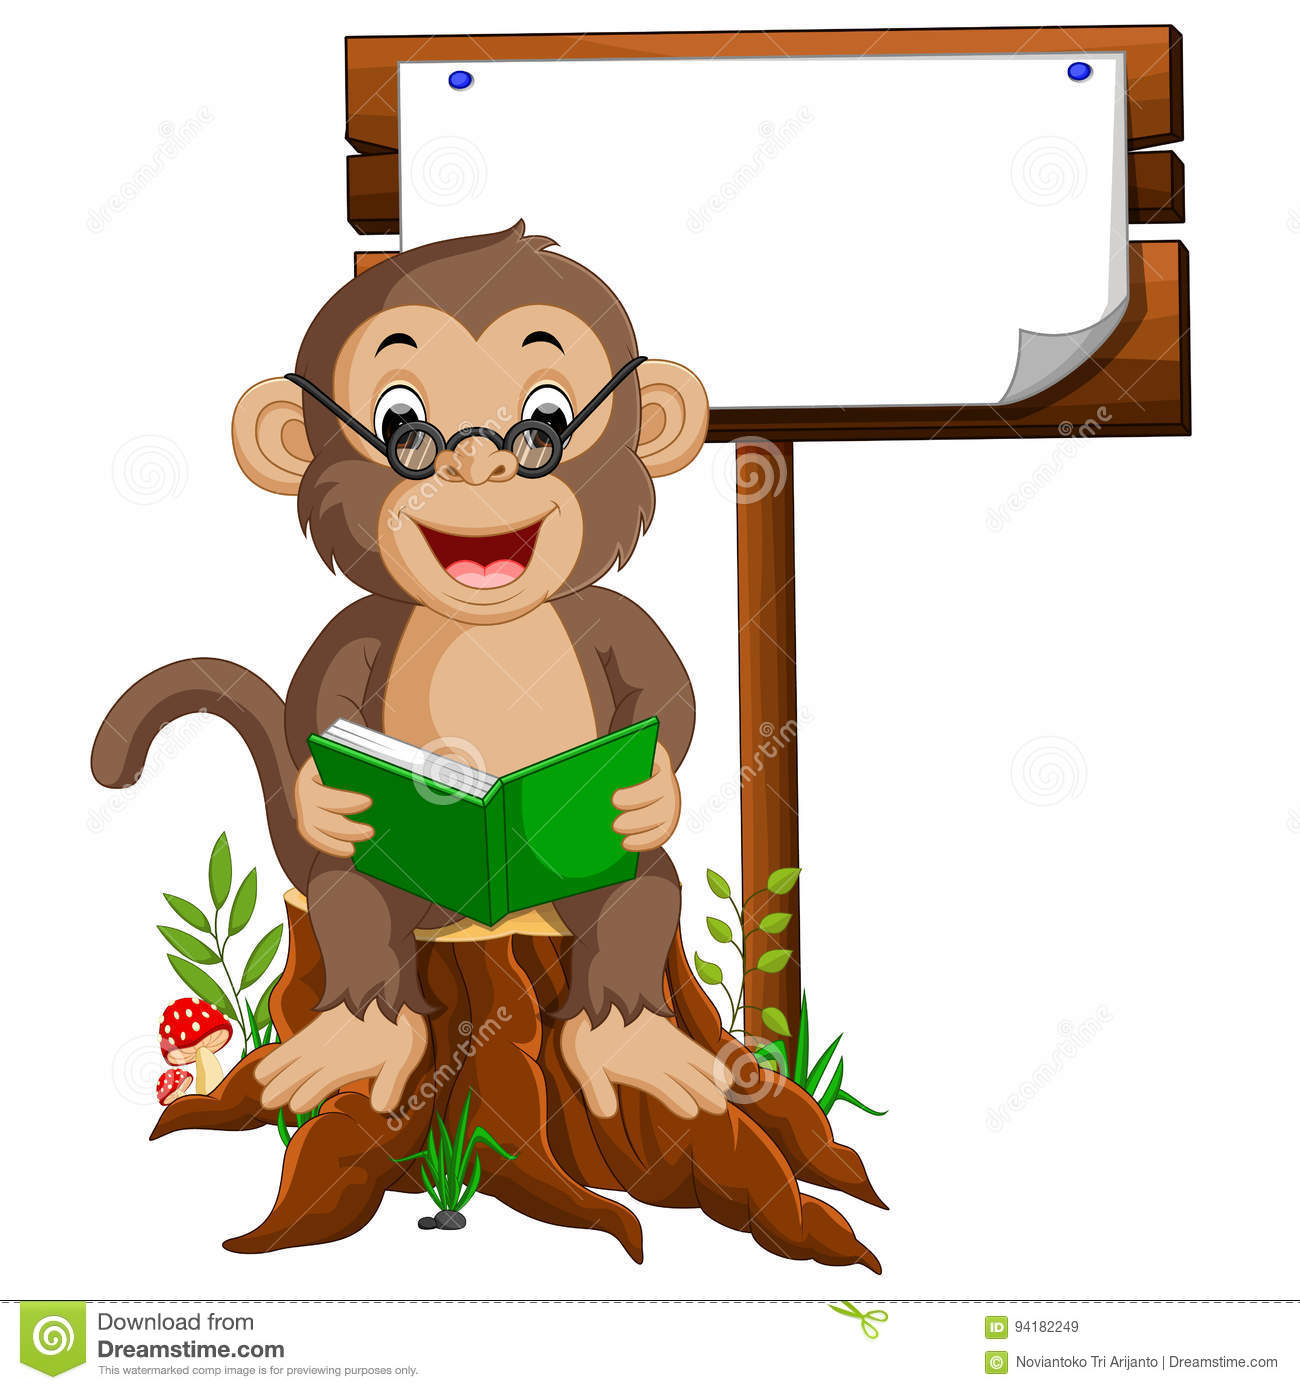 Monkey reading a book stock vector. Illustration of clipart.